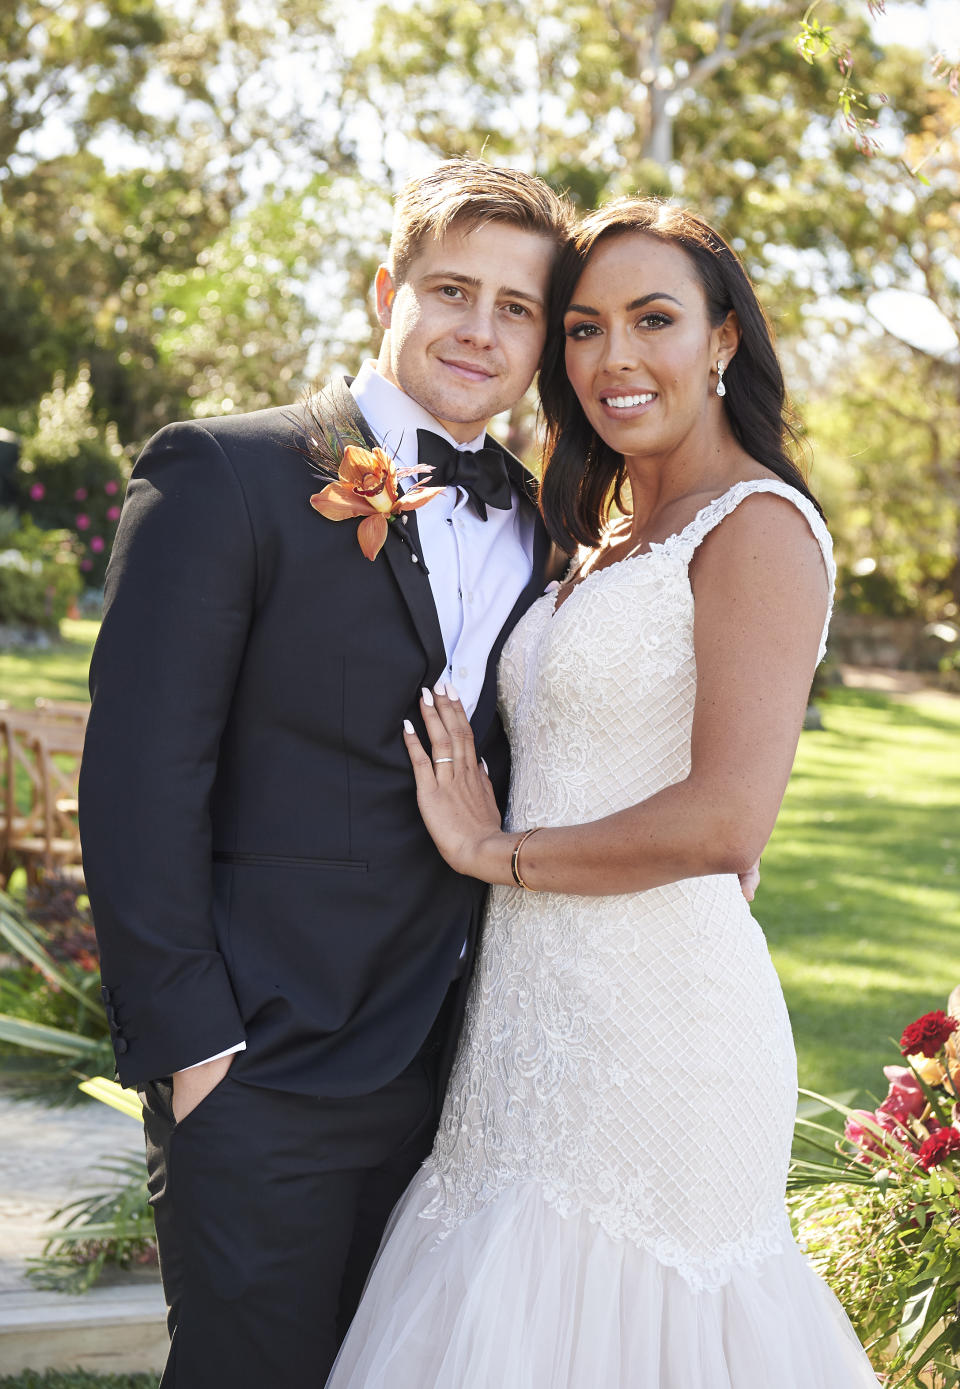 Married At First Sight bride and groom Natasha Spencer and Mikey Pembroke on their wedding day